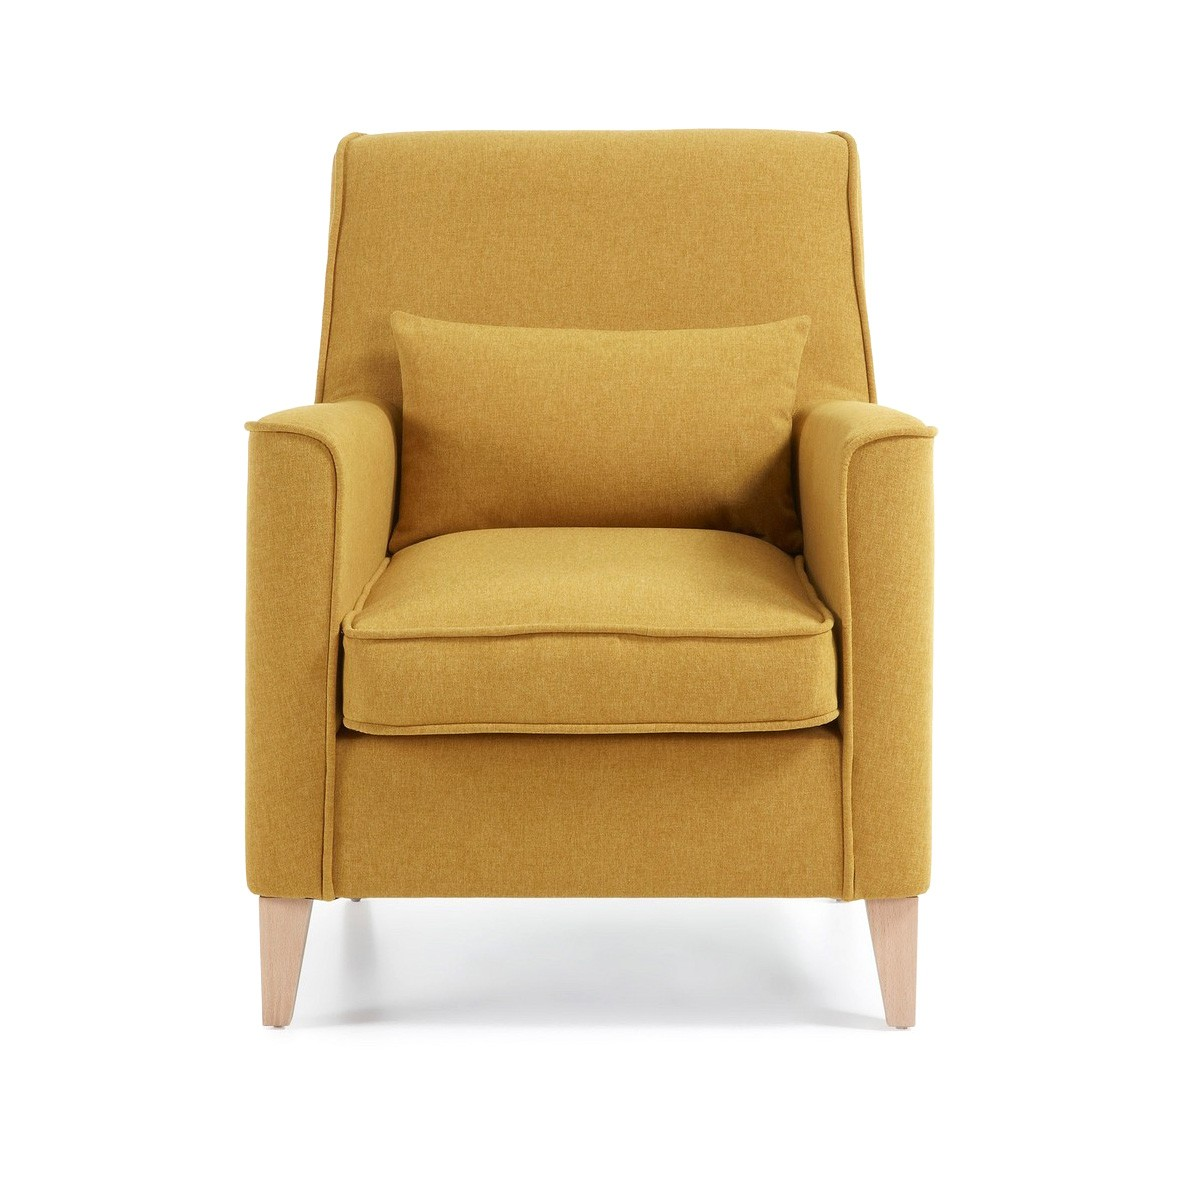 Amicis Fabric Lounge Armchair, Mustard